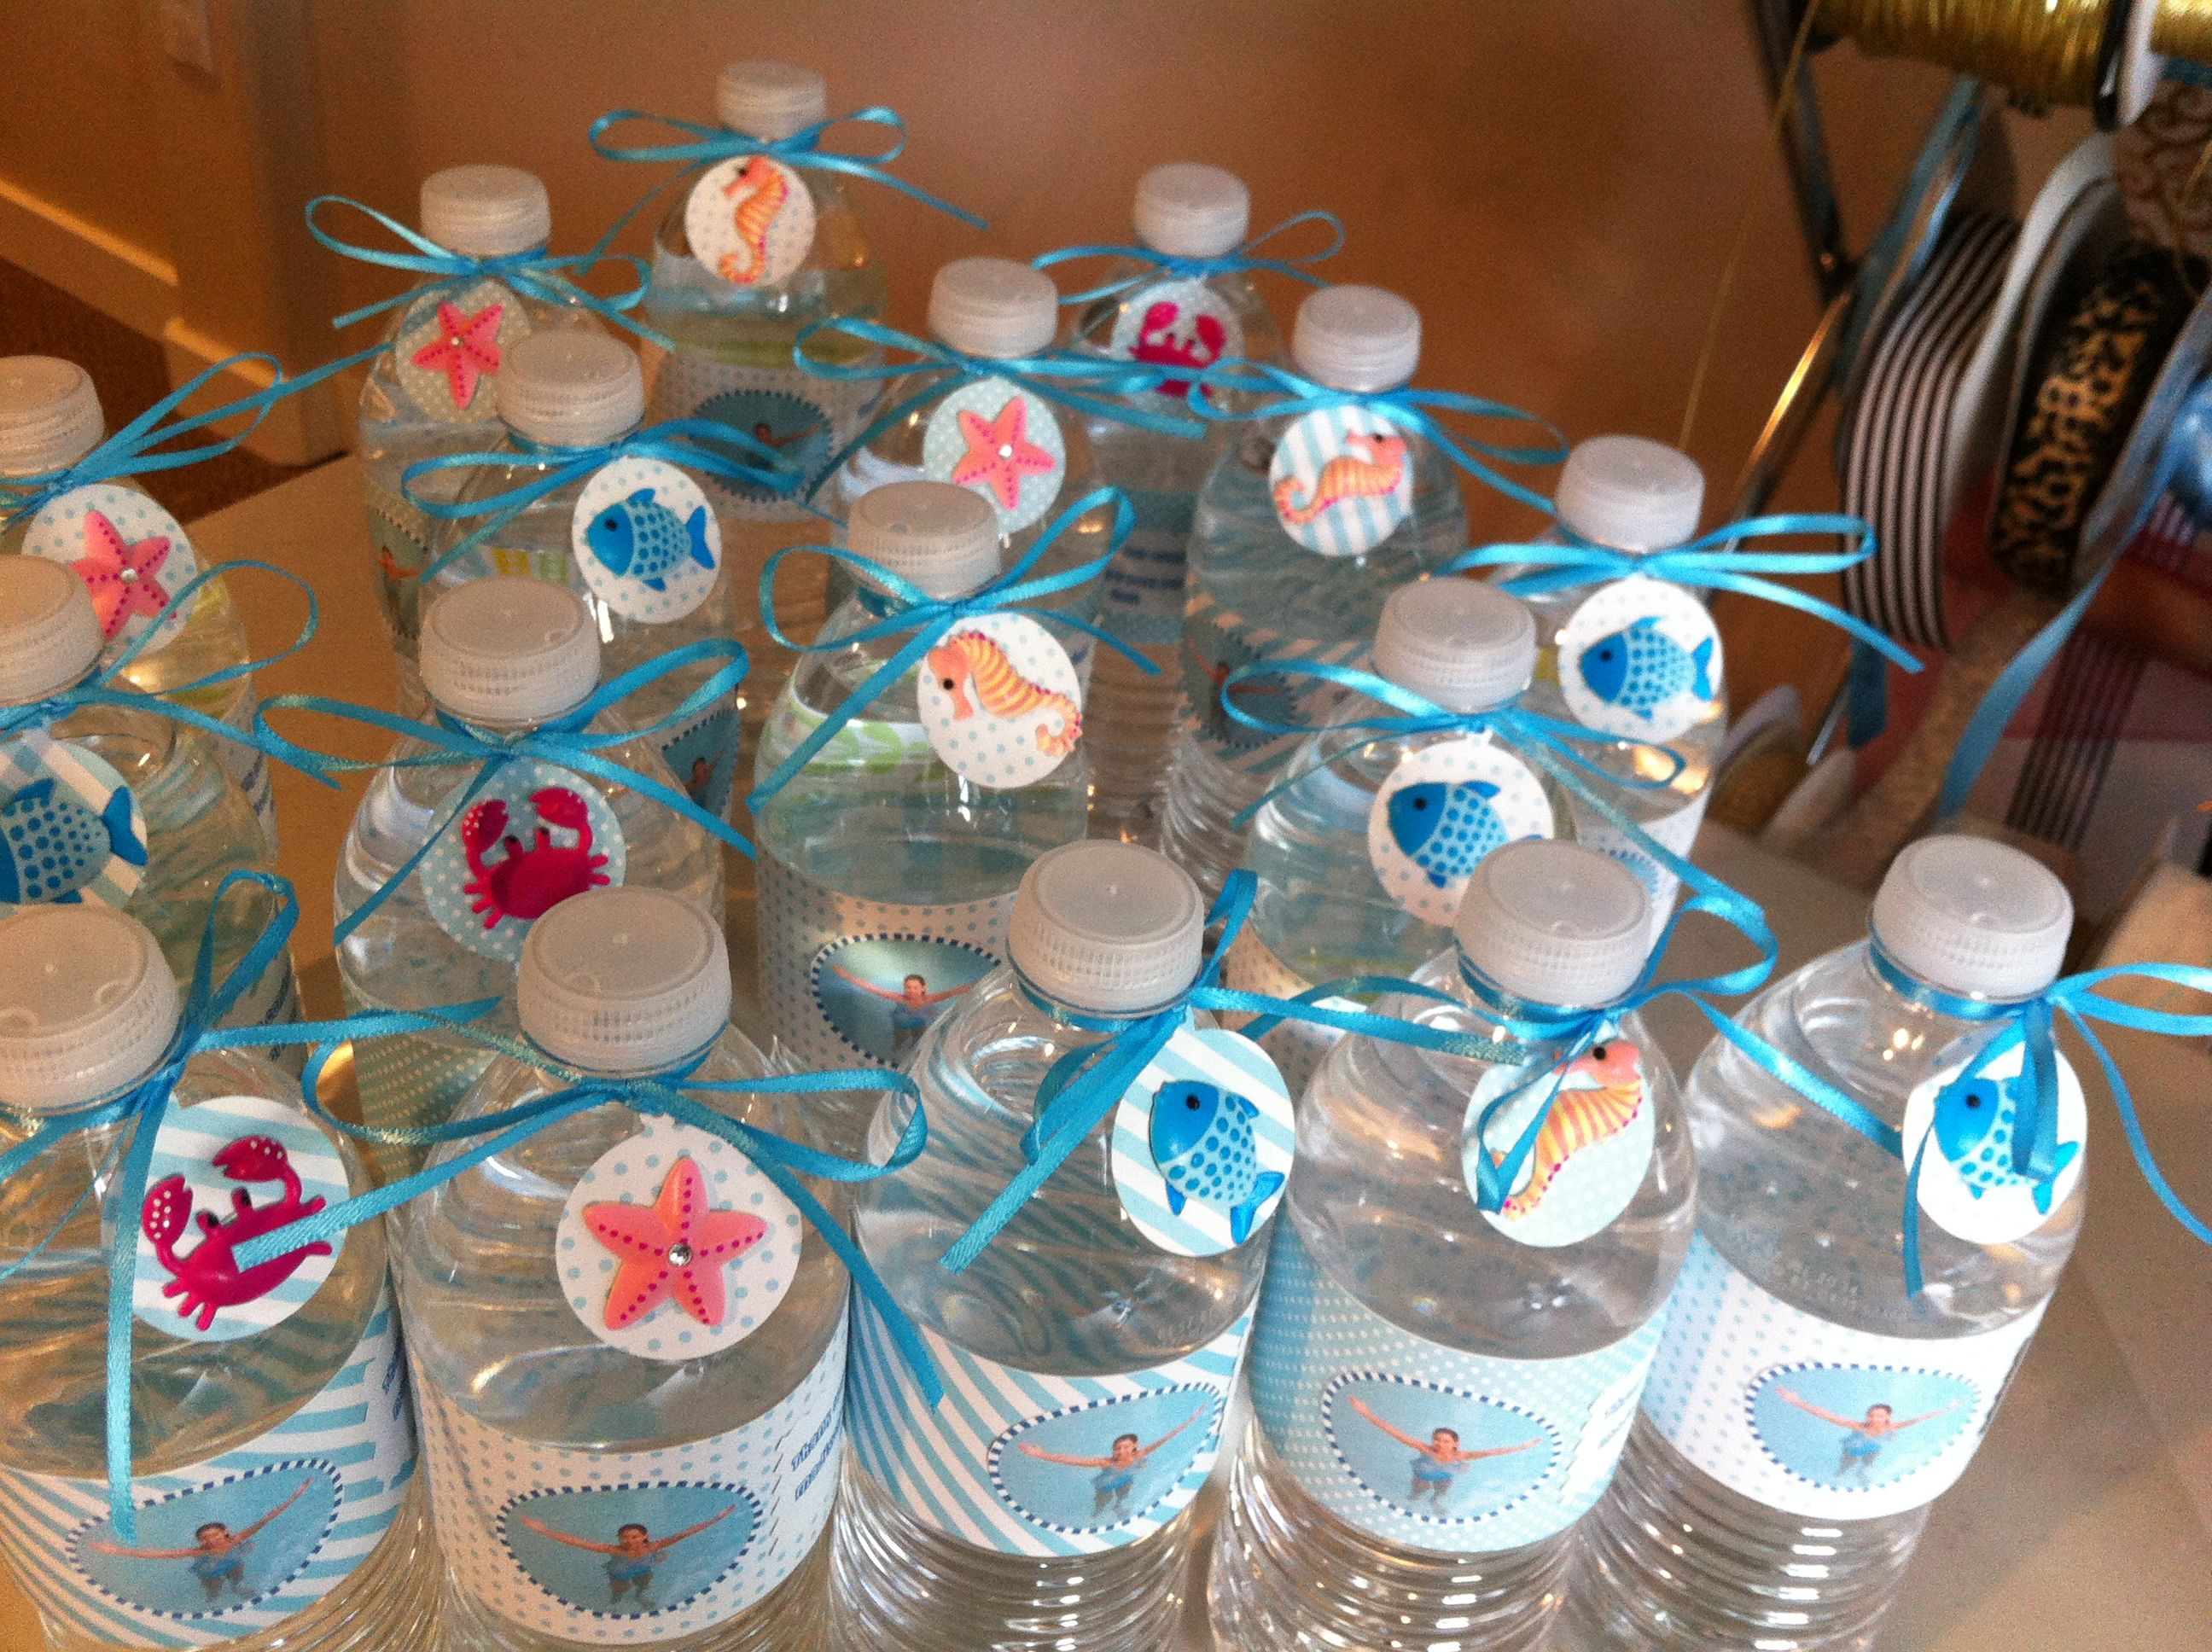 Pool Party Ideas Kids cheers to summer surfer style kids pool party ideas Kids Pool Party Water Bottle Favors